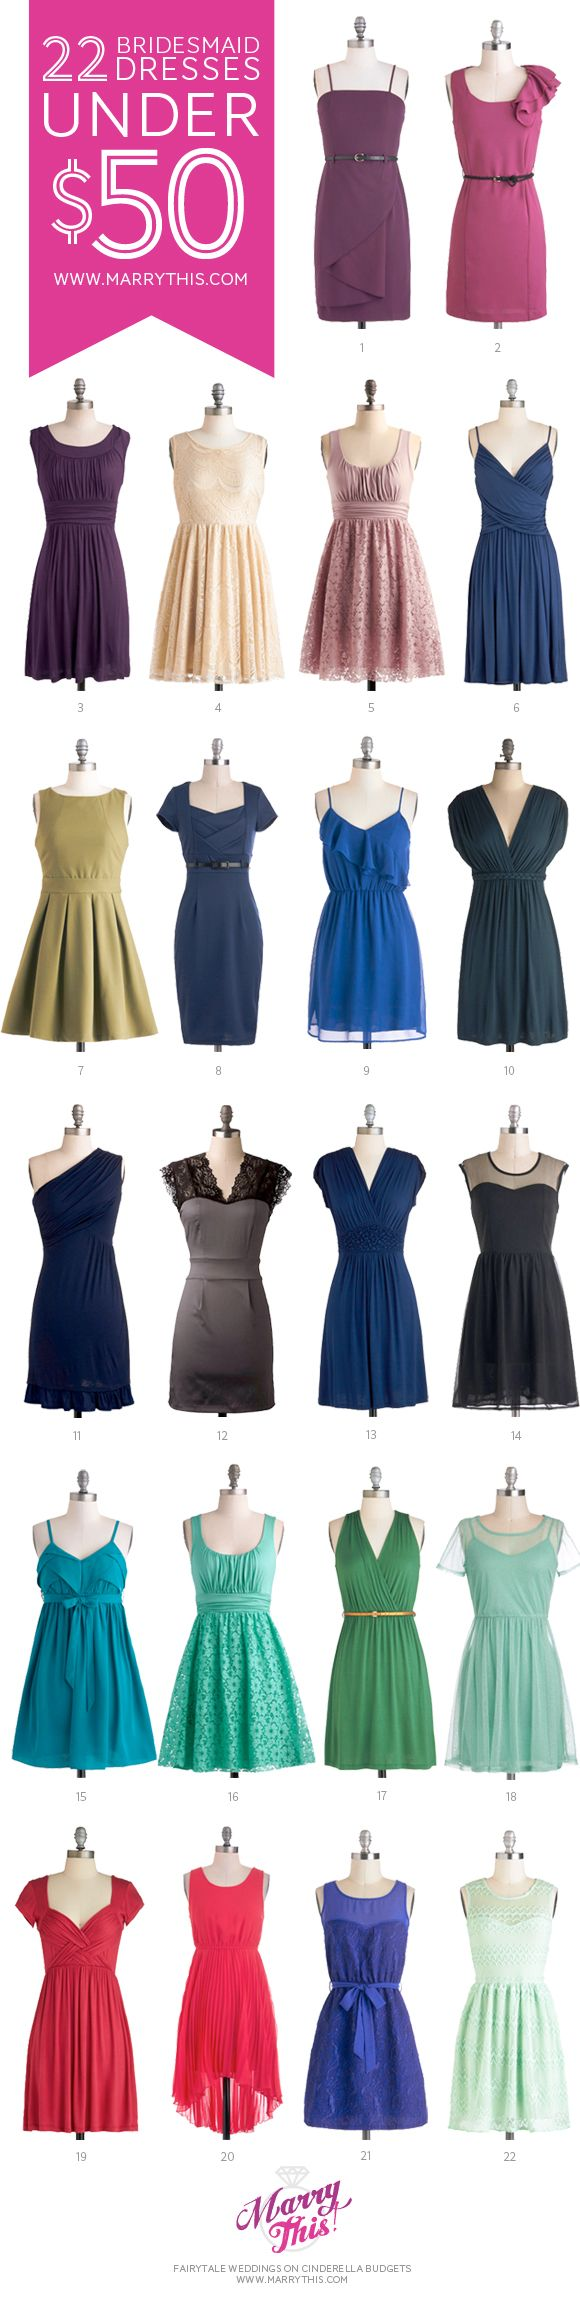 1000  ideas about Bridesmaid Dresses Under 50 on Pinterest ...